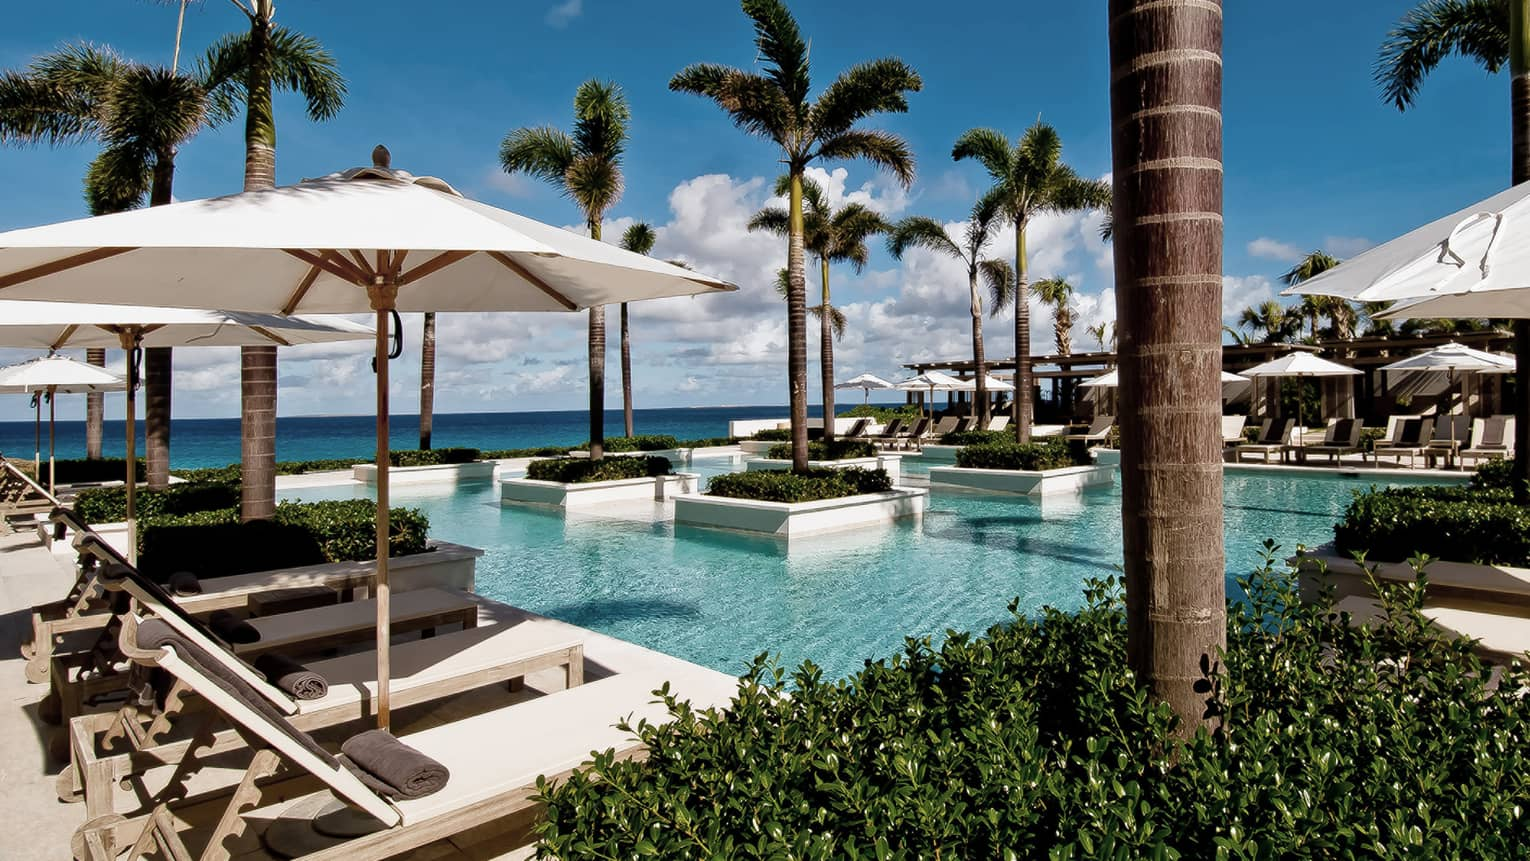 Aleta Pool with white potted palms, surrounded by white patio chairs, umbrellas, ocean views